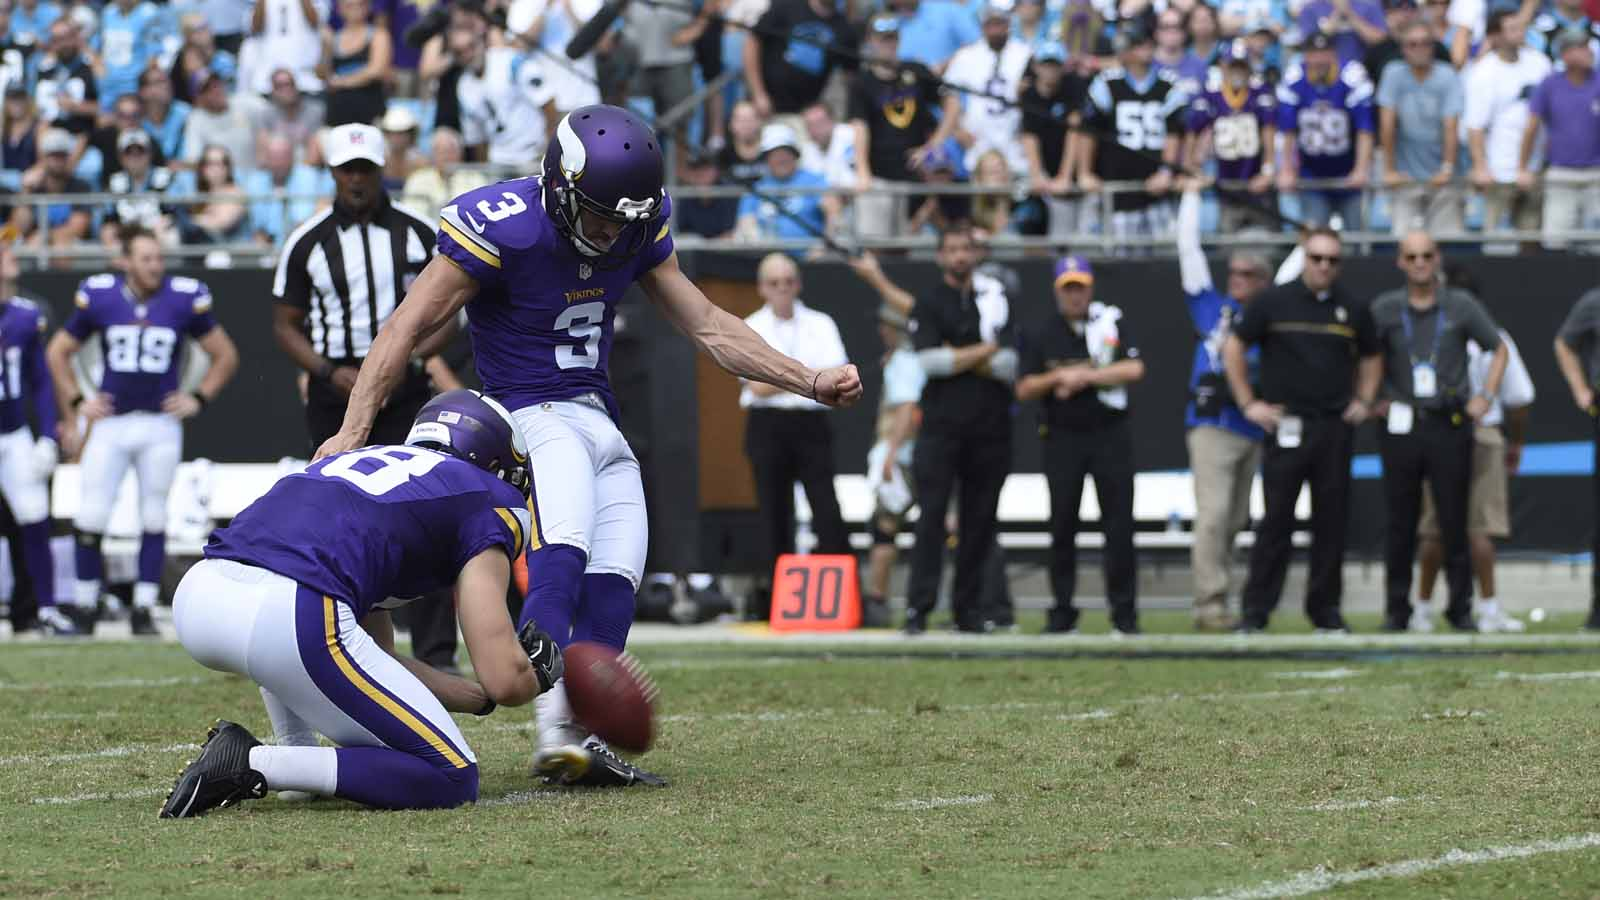 Vikings looking for new options to end four-game losing skid